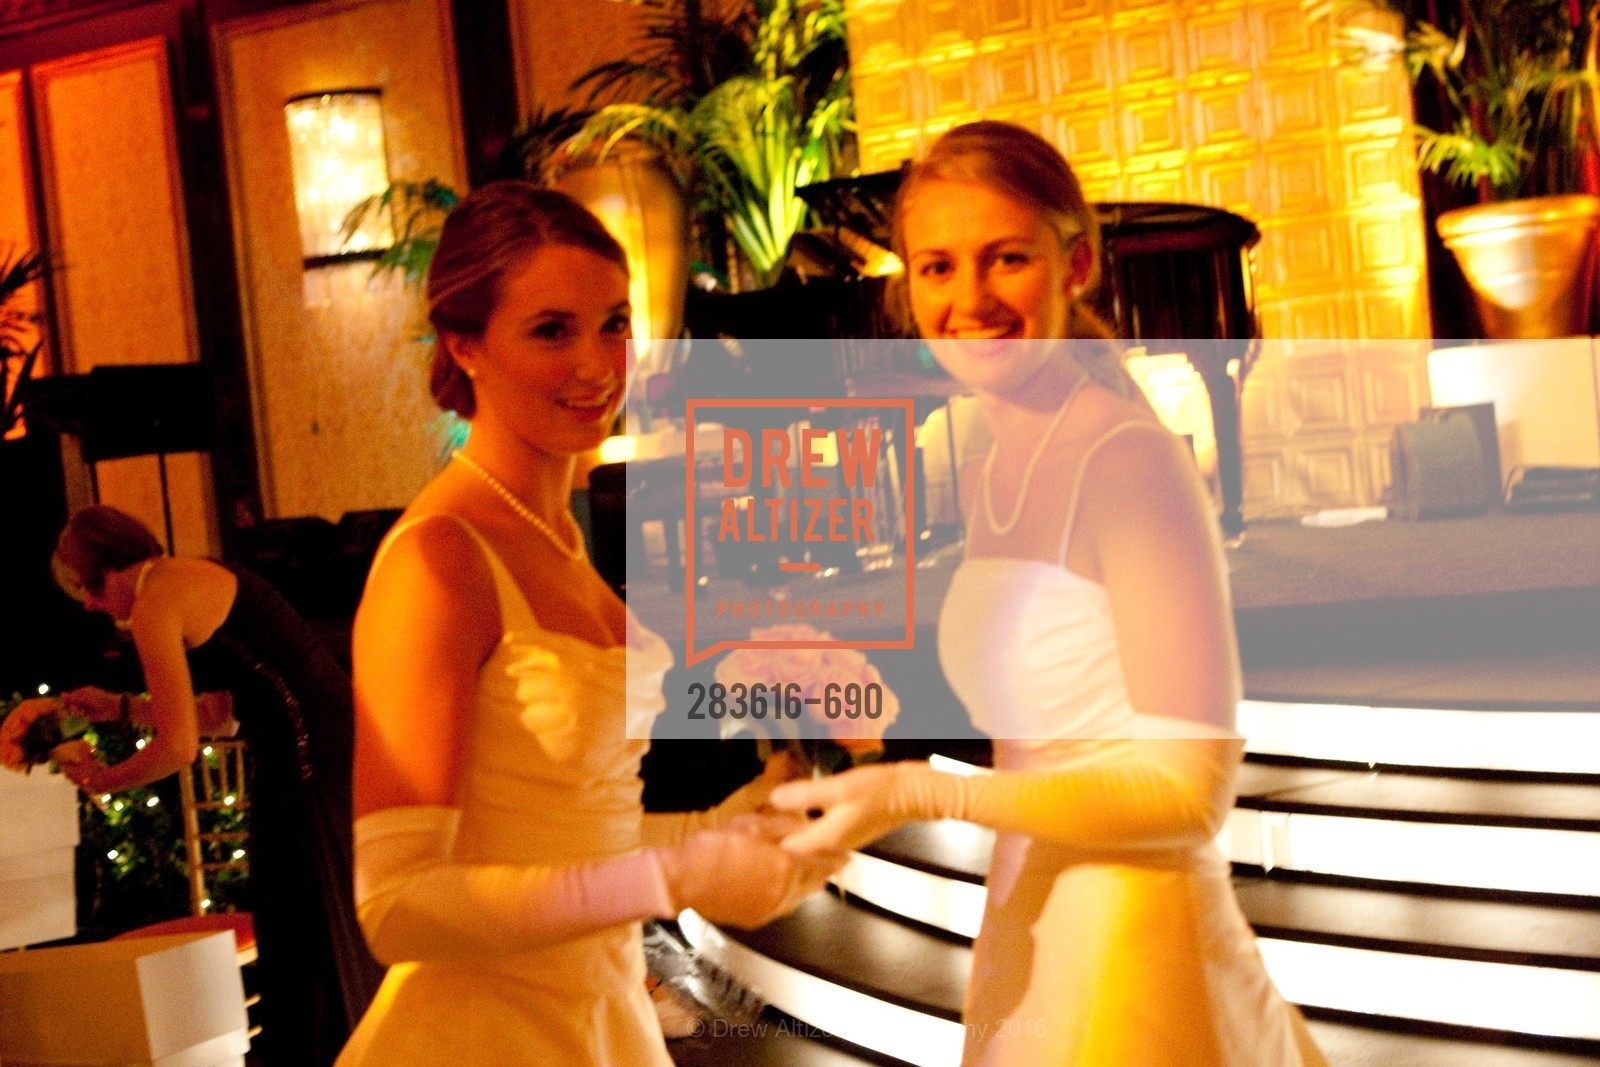 Anne Christine Lewis, Abigail Brannan Mathieson, 2009 Debutante Ball, Unknown, July 4th, 2008,Drew Altizer, Drew Altizer Photography, full-service agency, private events, San Francisco photographer, photographer california